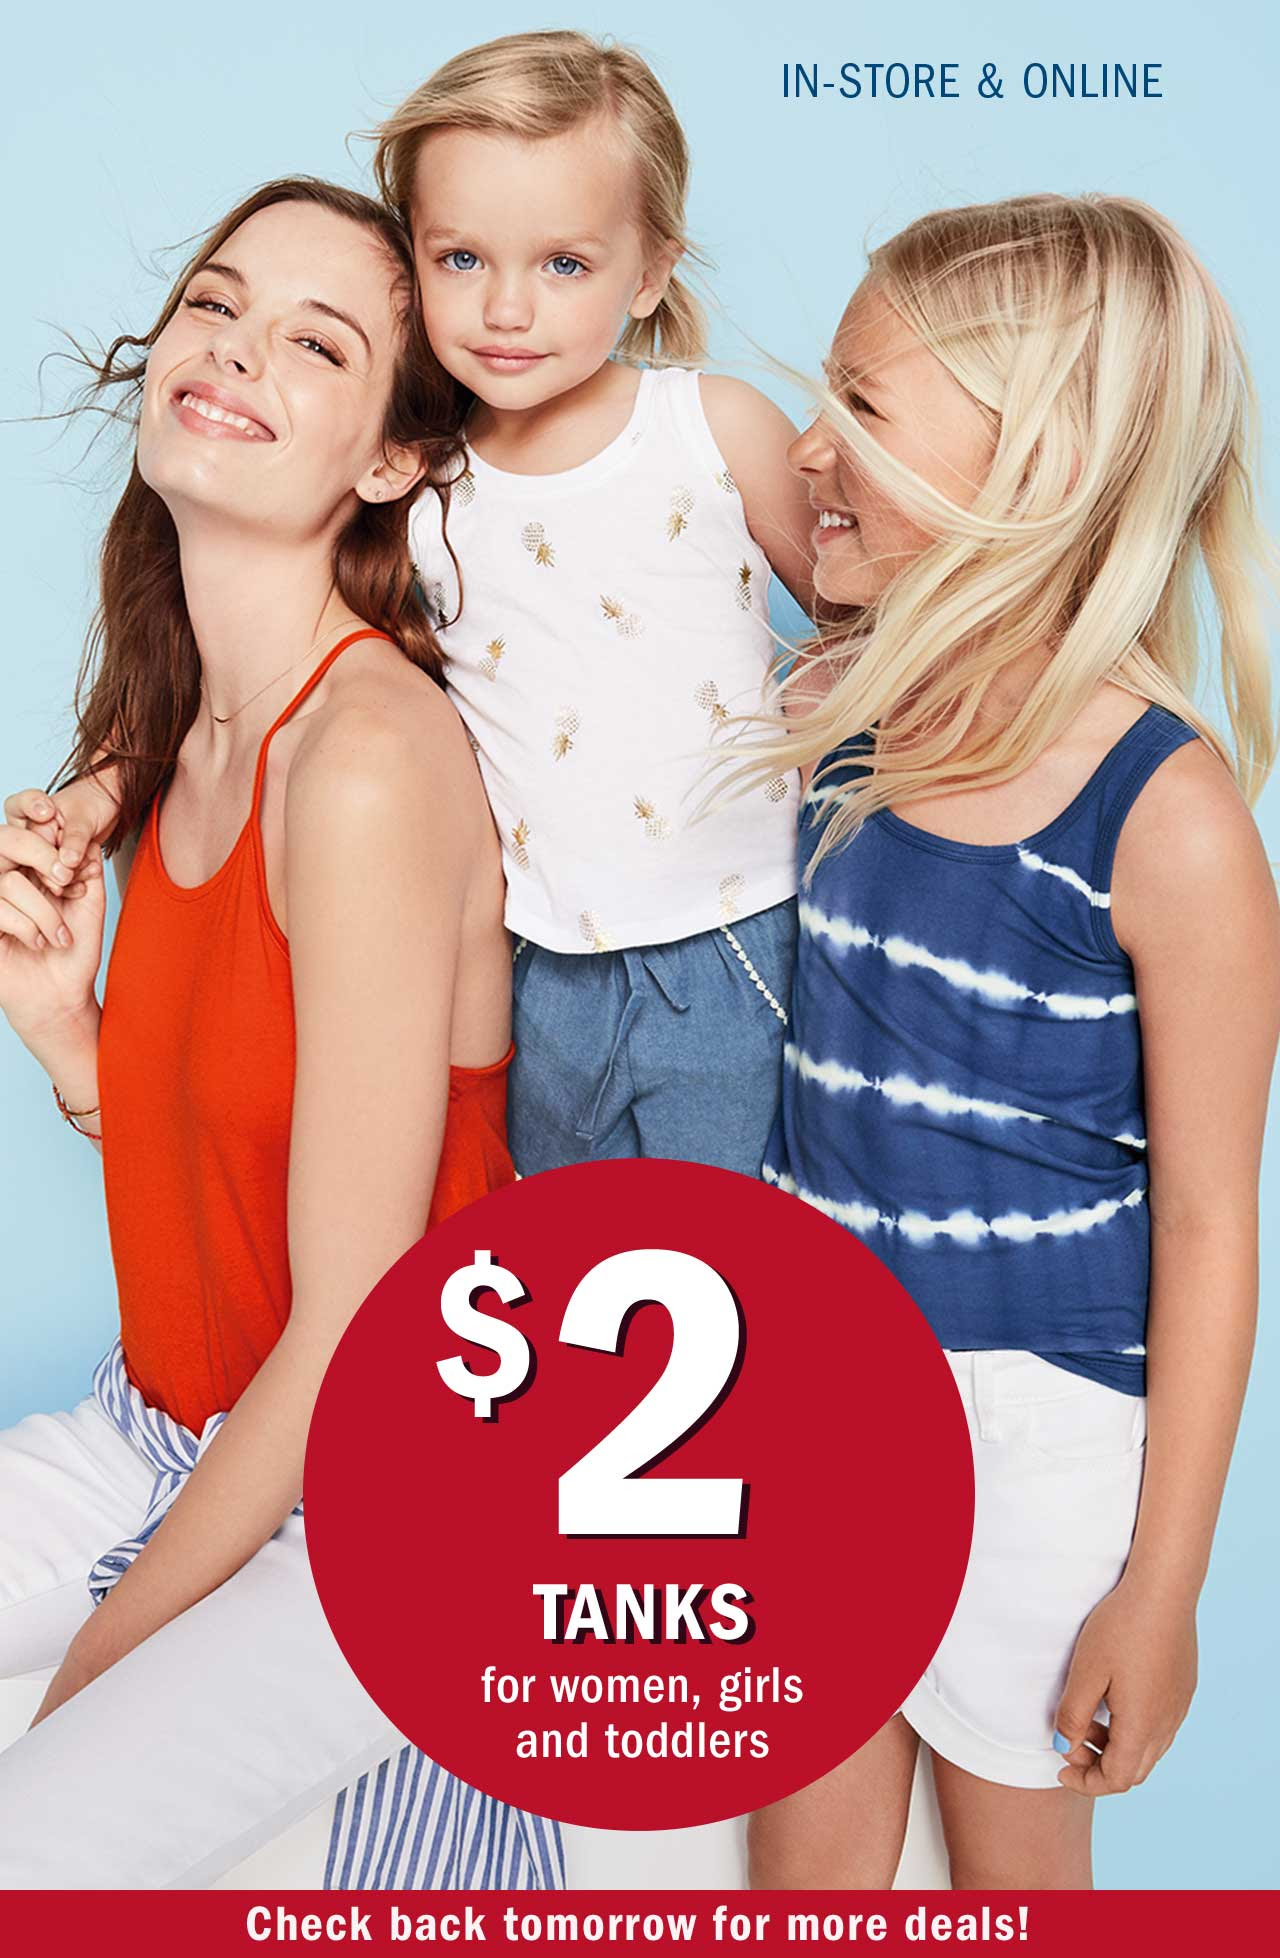 IN-STORE & ONLINE | $2 TANKS for women, girls and toddlers